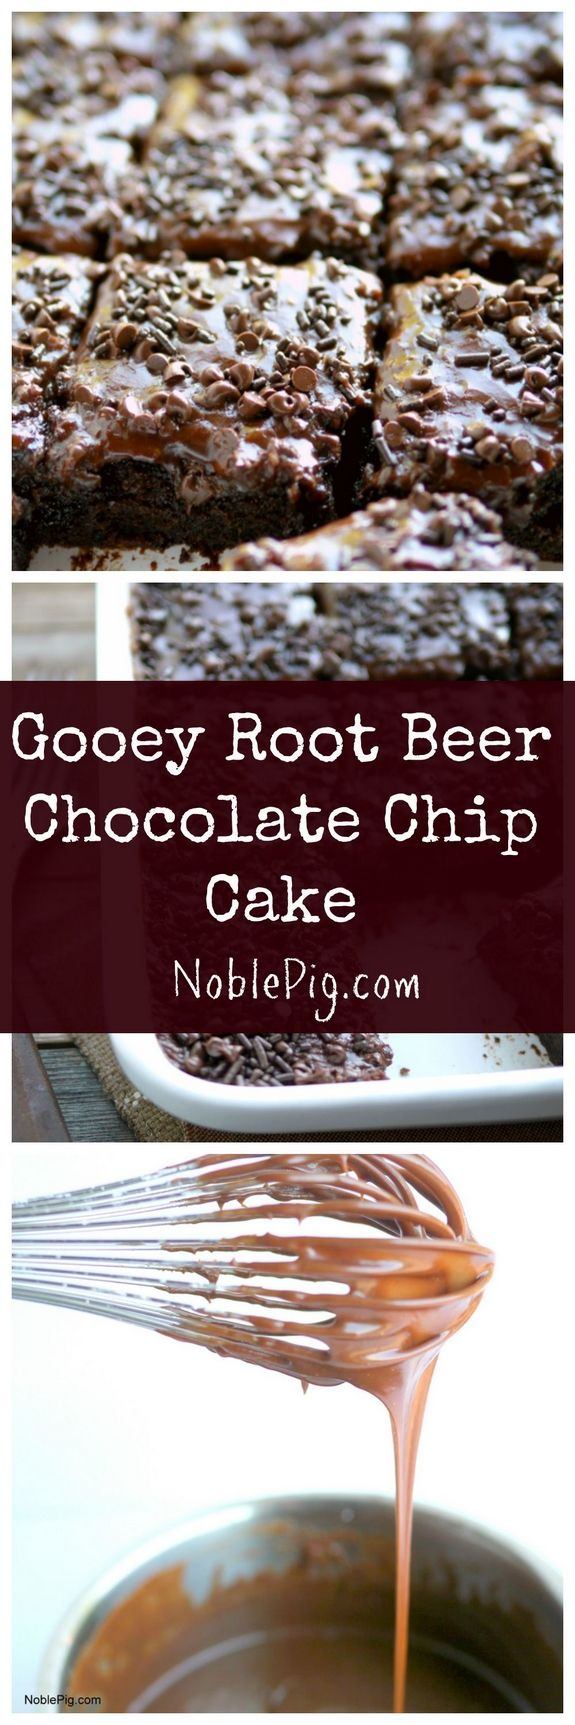 Gooey Root Beer Chocolate Chip Cake from NoblePig.com